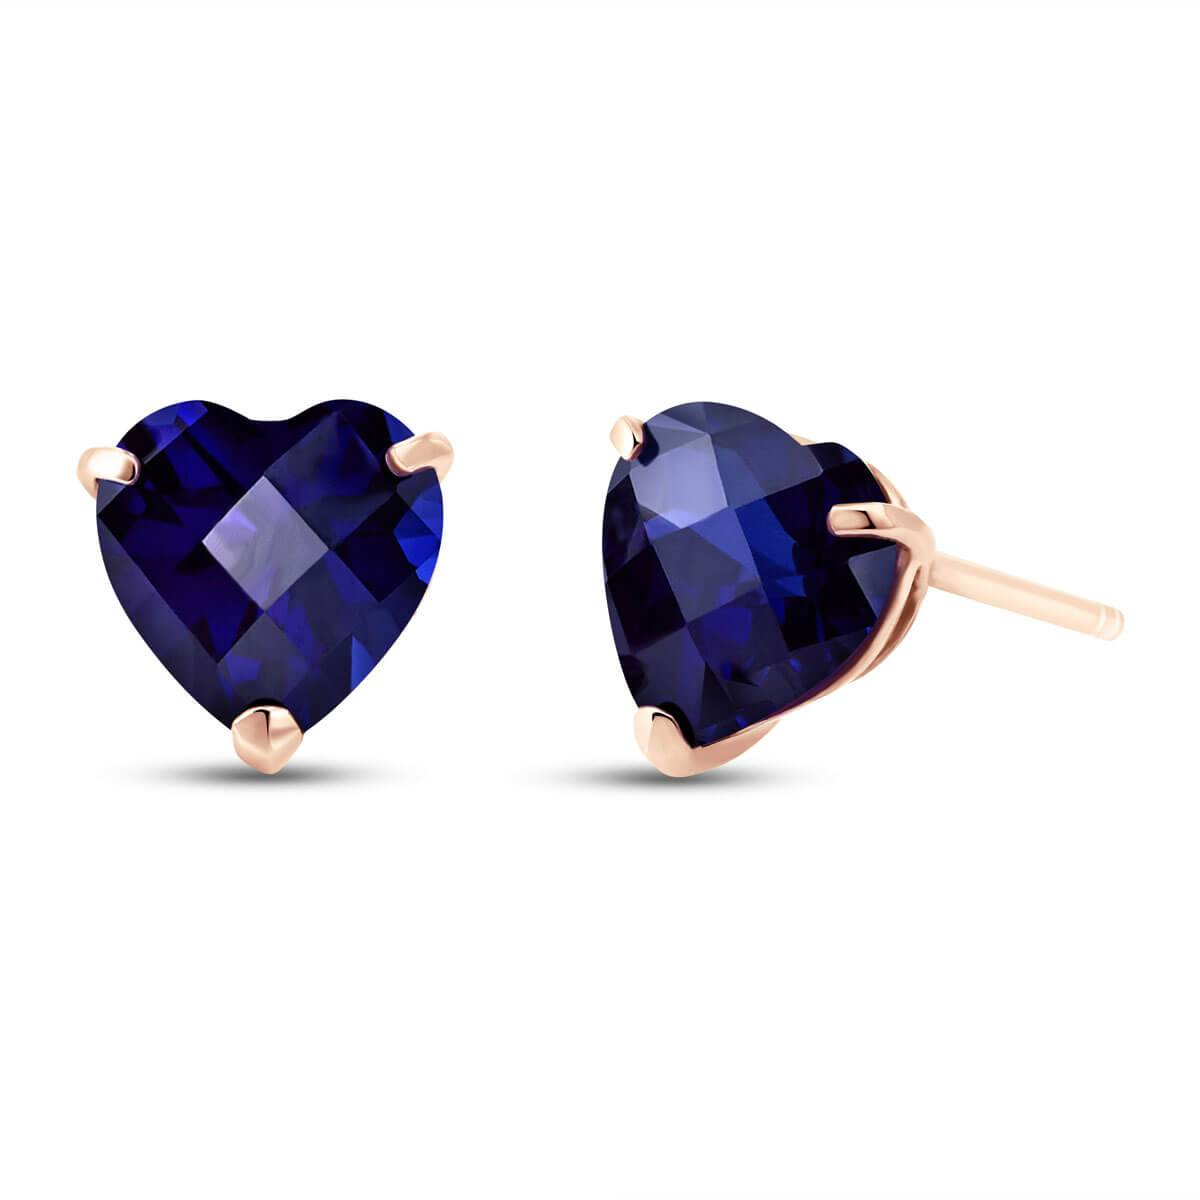 QP Jewellers Sapphire Stud Earrings 3.1 ctw in 9ct Rose Gold